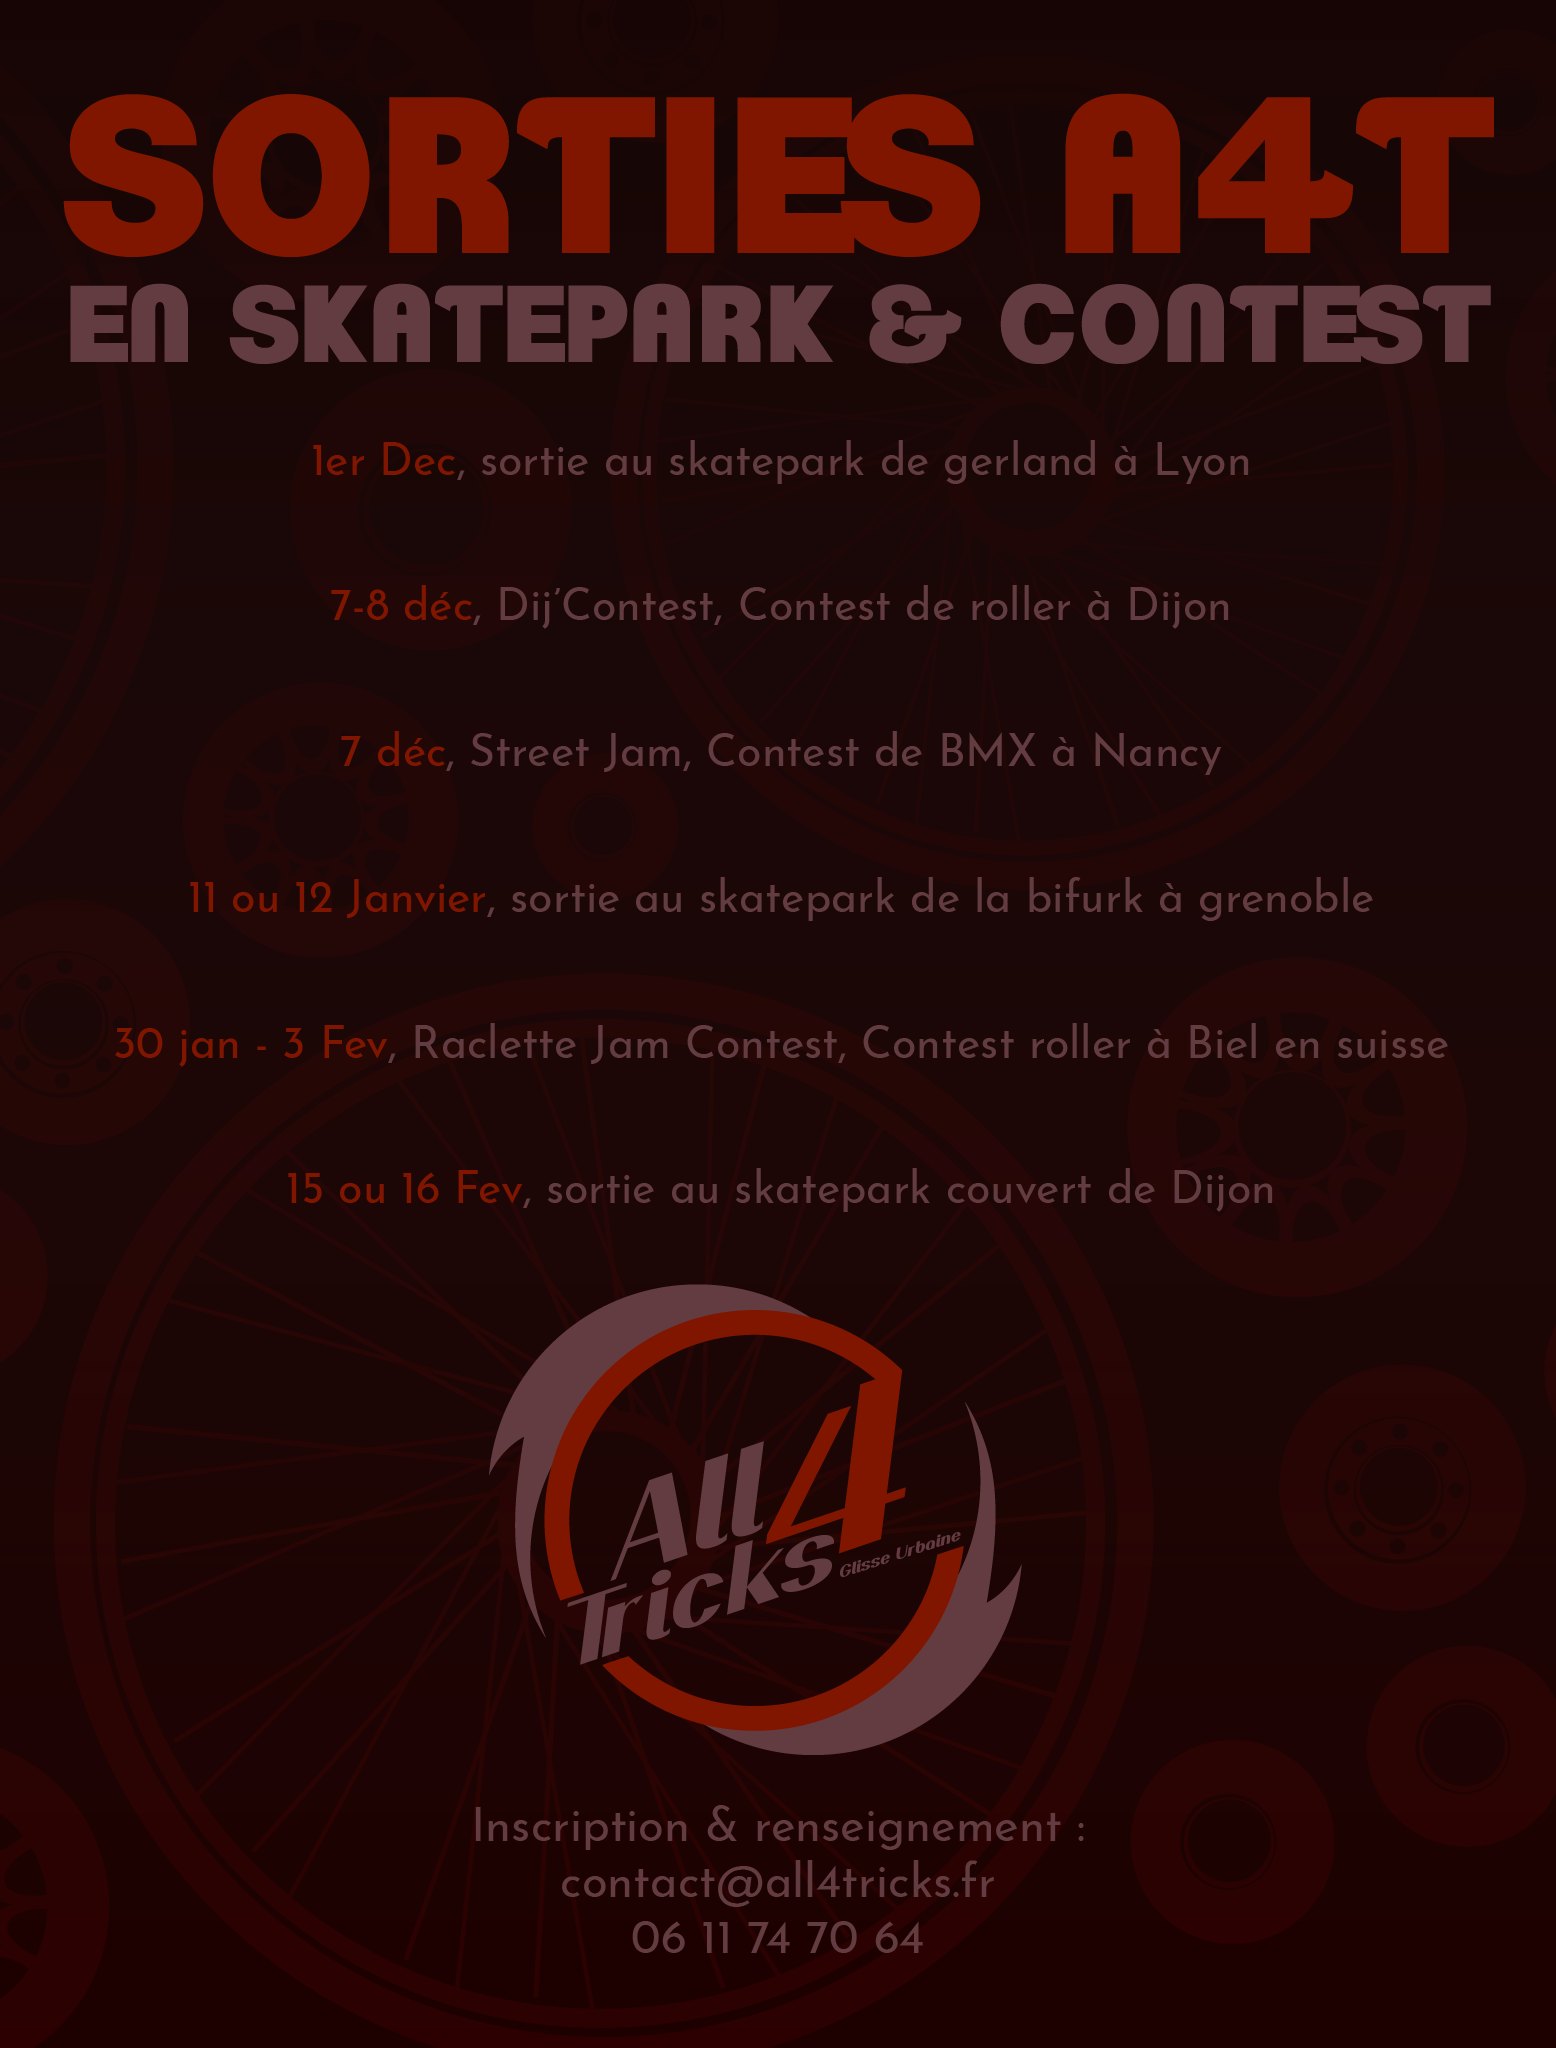 Chalon A4T All4tricks association sportive club de skate Web roller trottinette bmx contest event evenement initiation